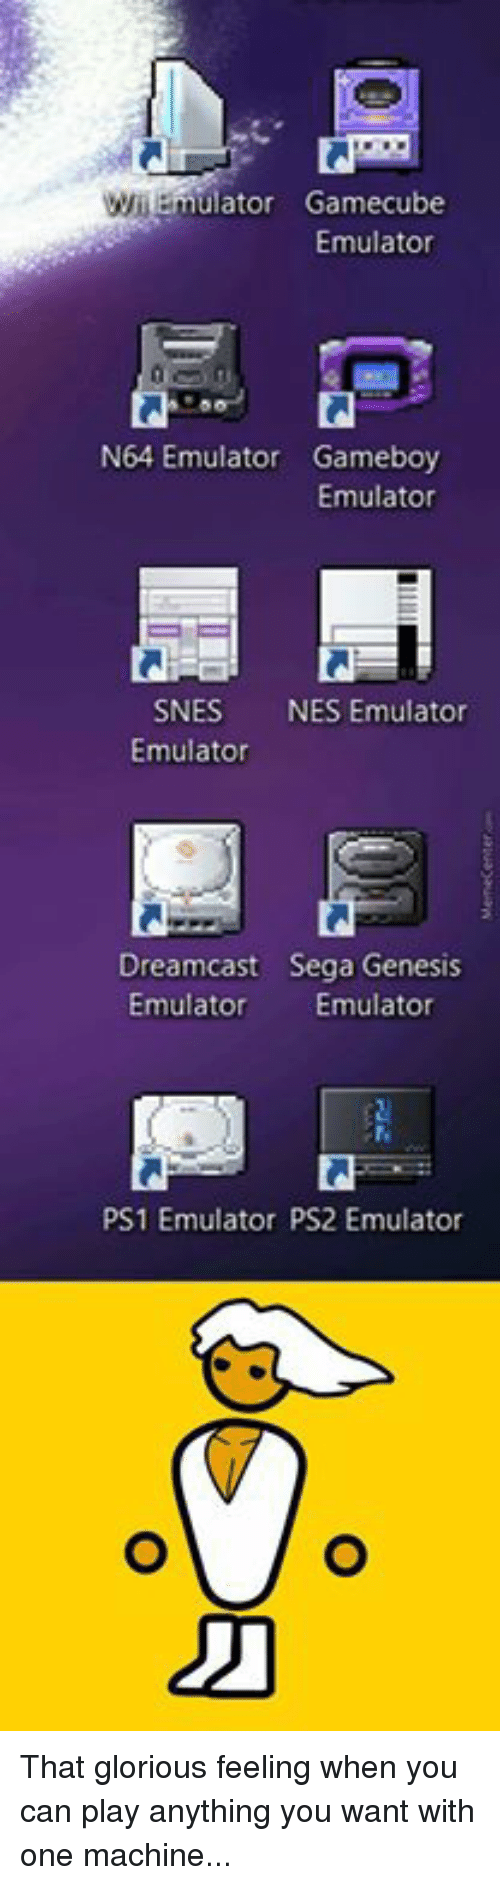 gamecubes: lator Gamecube  Emulator  N64 Emulator Gameboy  Emulator  SNES  NES Emulator  Emulator  Dreamcast Sega Genesis  Emulator Emulator  PS1 Emulator PS2 Emulator That glorious feeling when you can play anything you want with one machine...